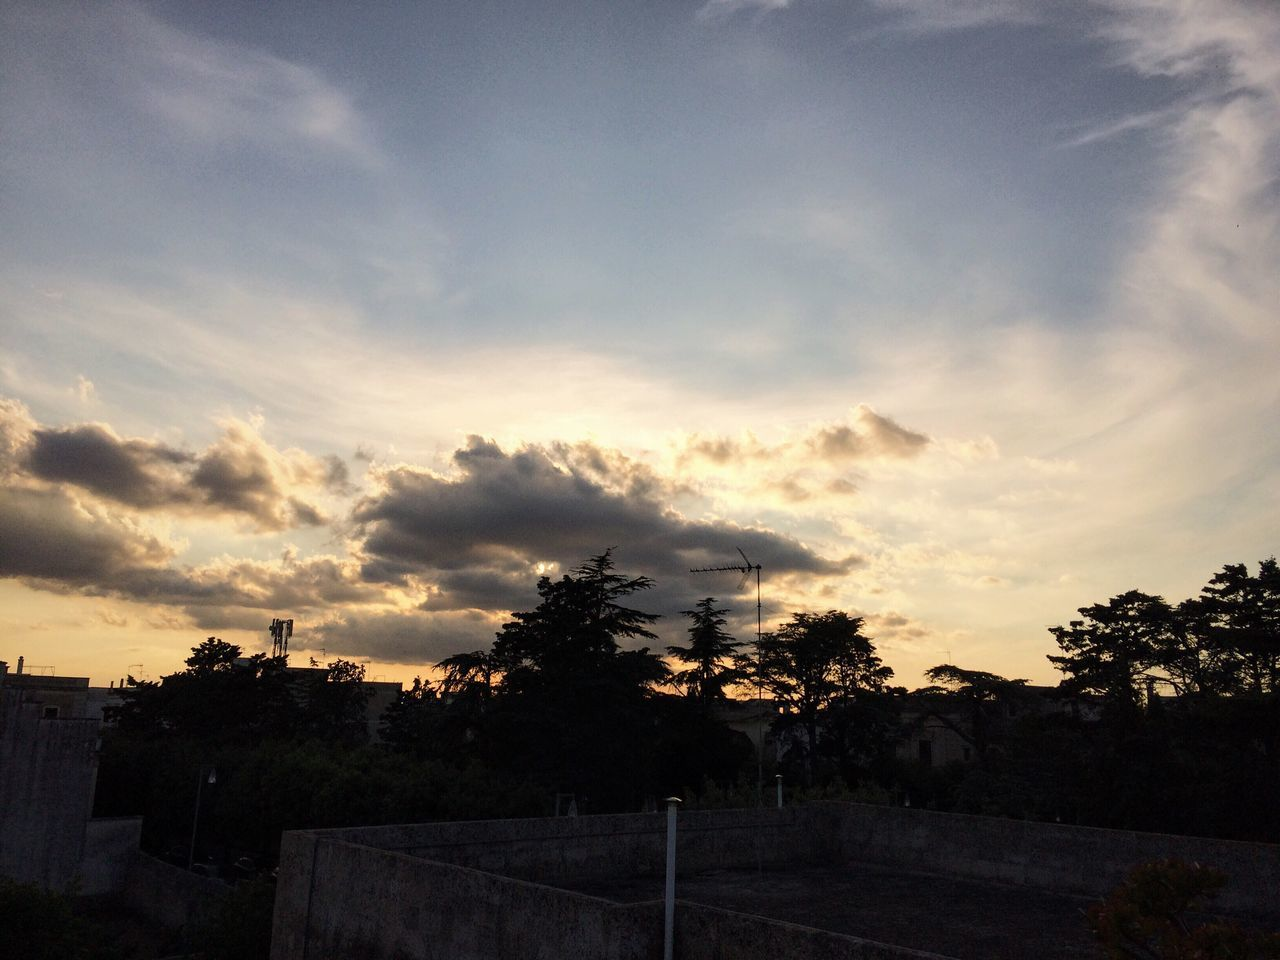 cloud - sky, sky, no people, sunset, silhouette, tree, scenics, beauty in nature, nature, tranquility, outdoors, landscape, day